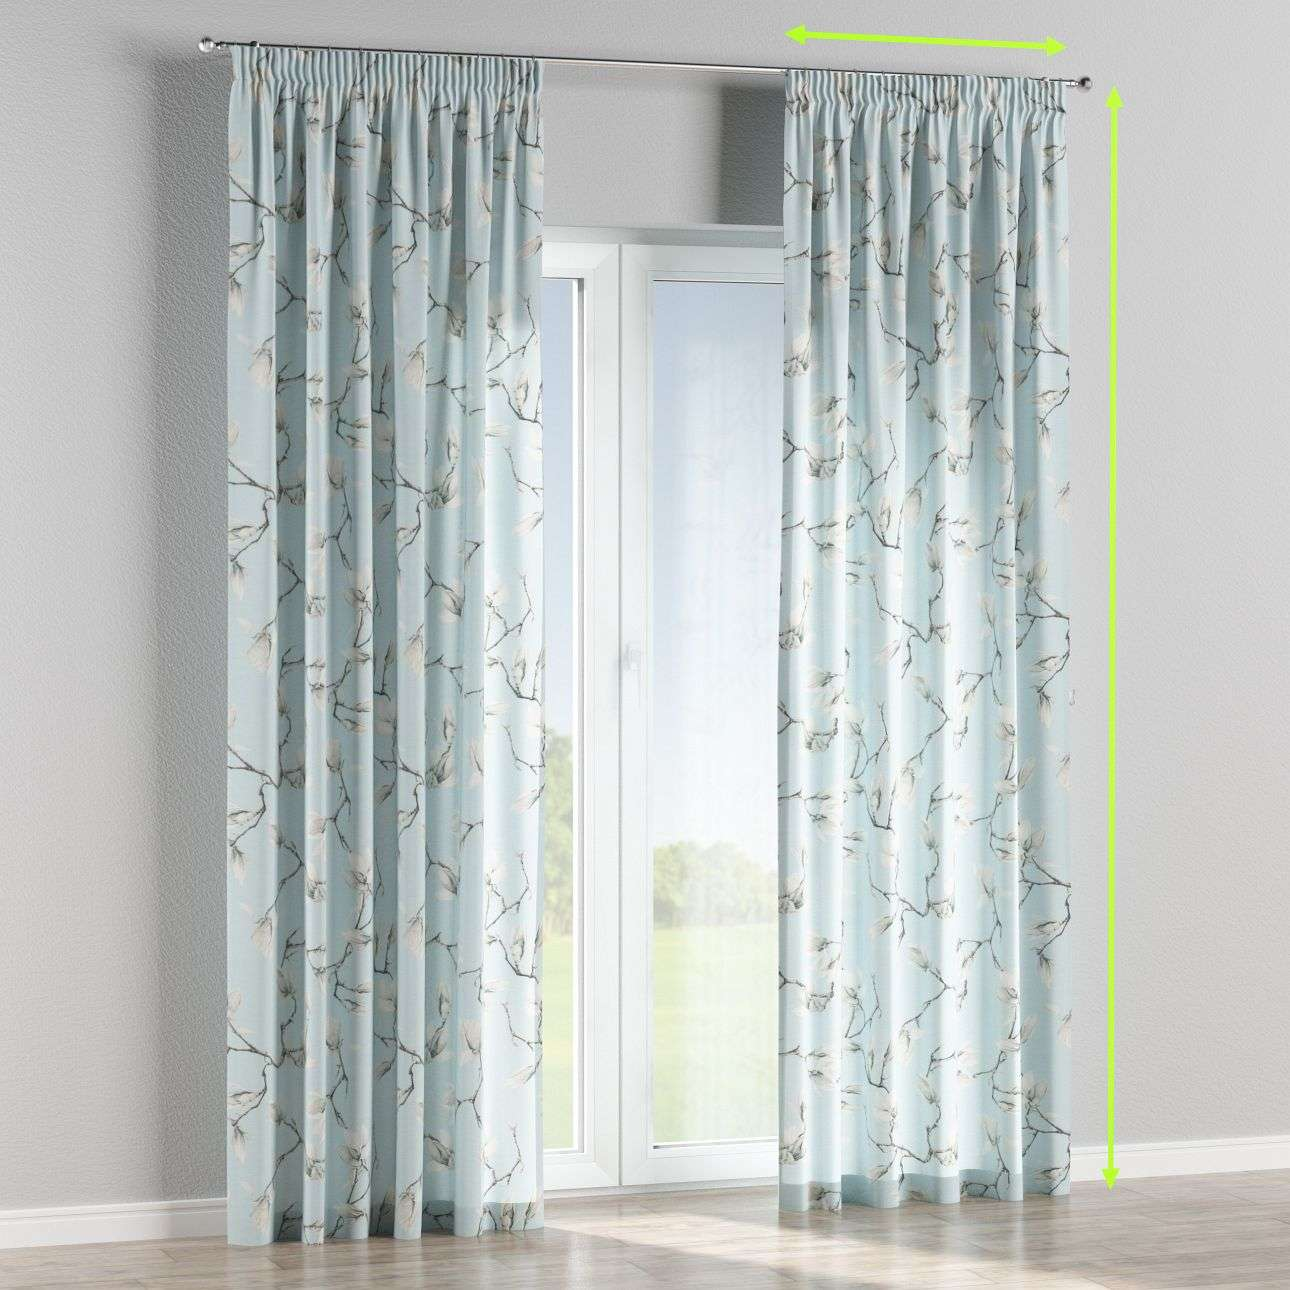 Pencil pleat curtains in collection Flowers, fabric: 311-14